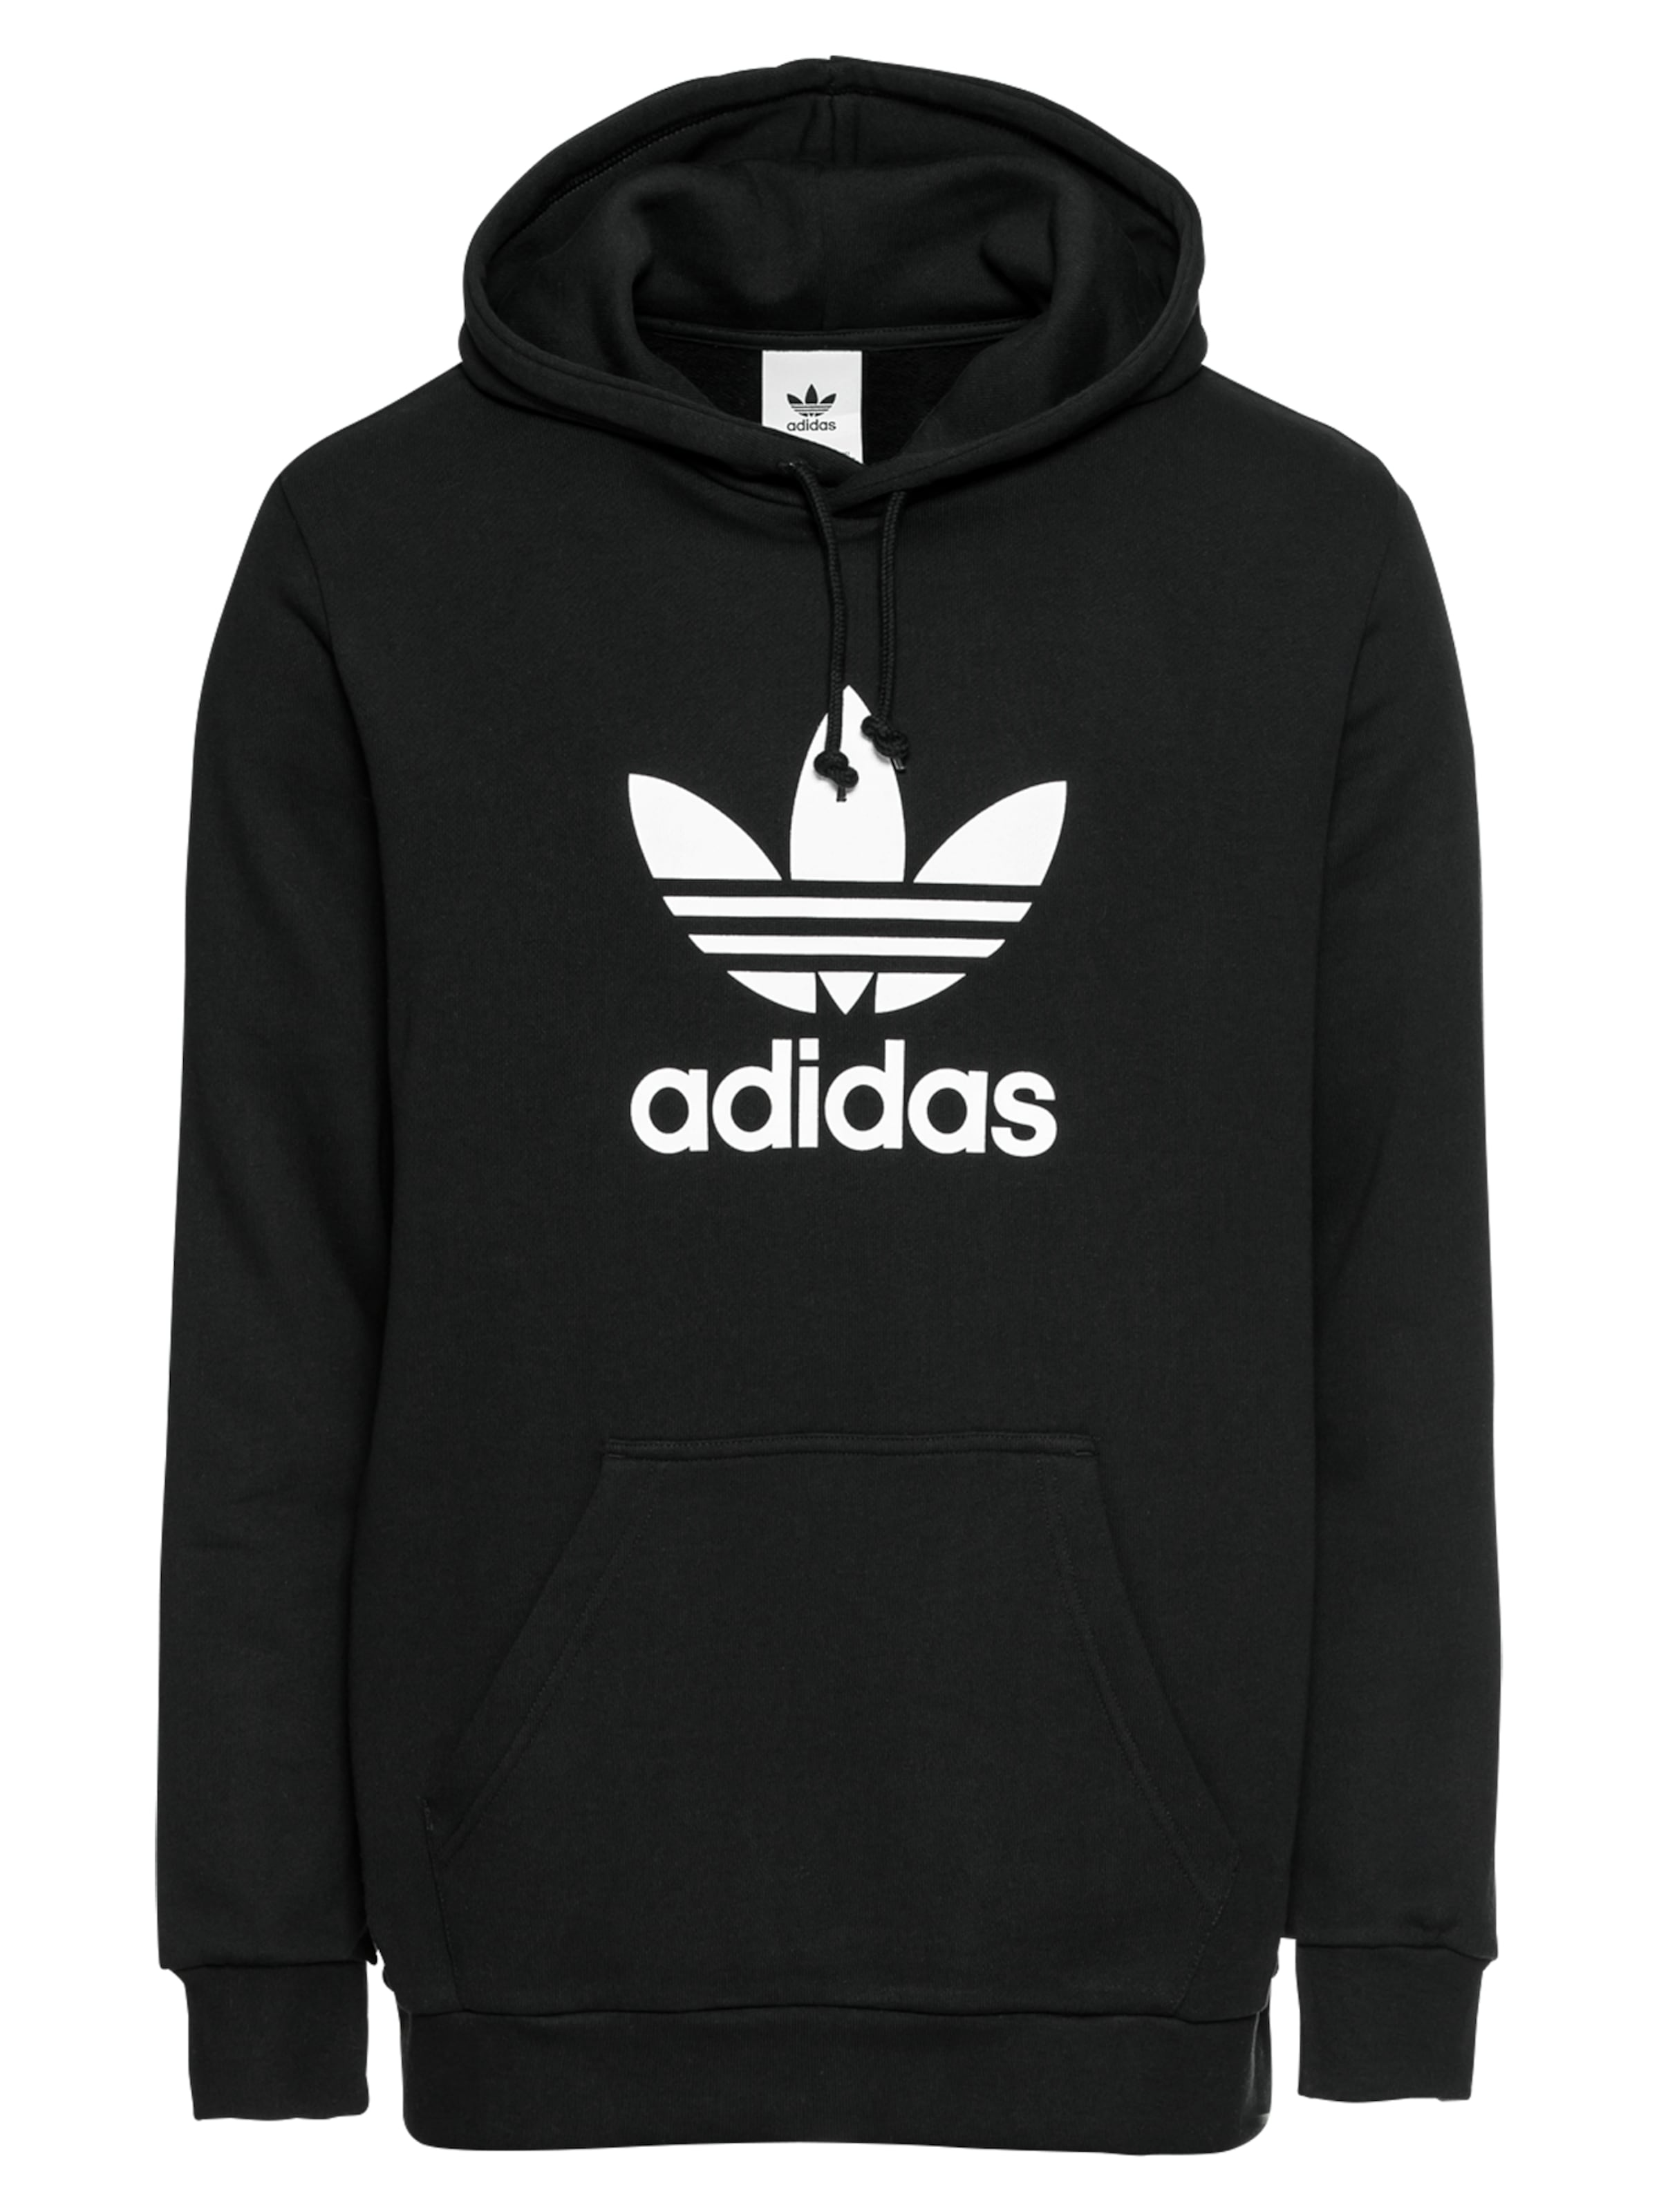 Originals En NoirBlanc Sweat shirt Adidas 'trefoil' VpqMLSzUG